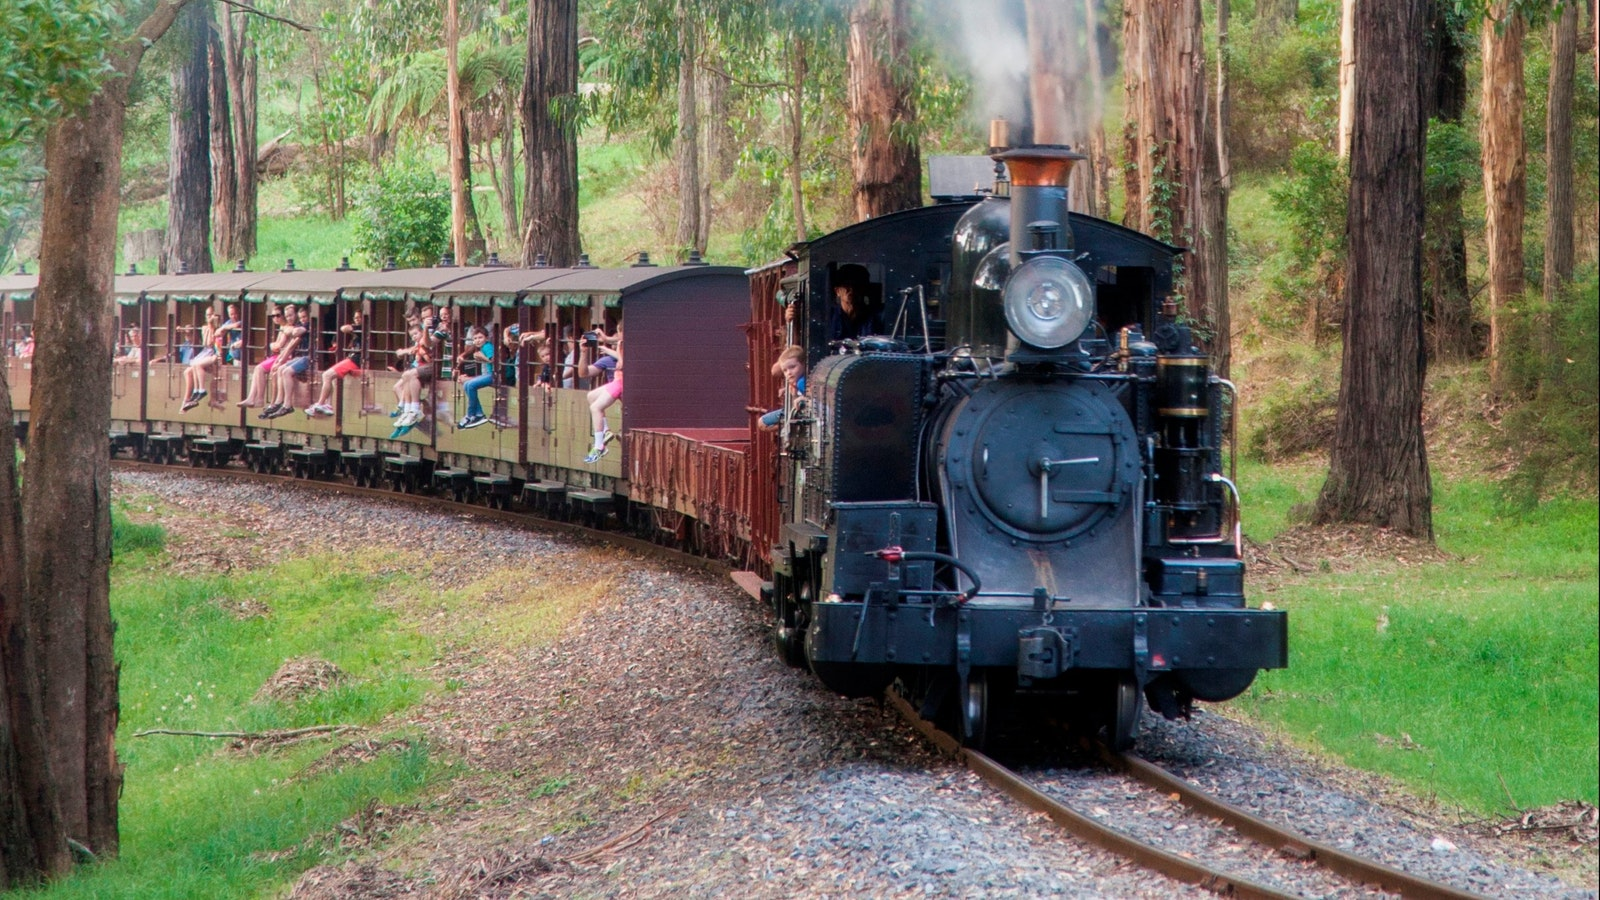 Puffing Billy with carriages